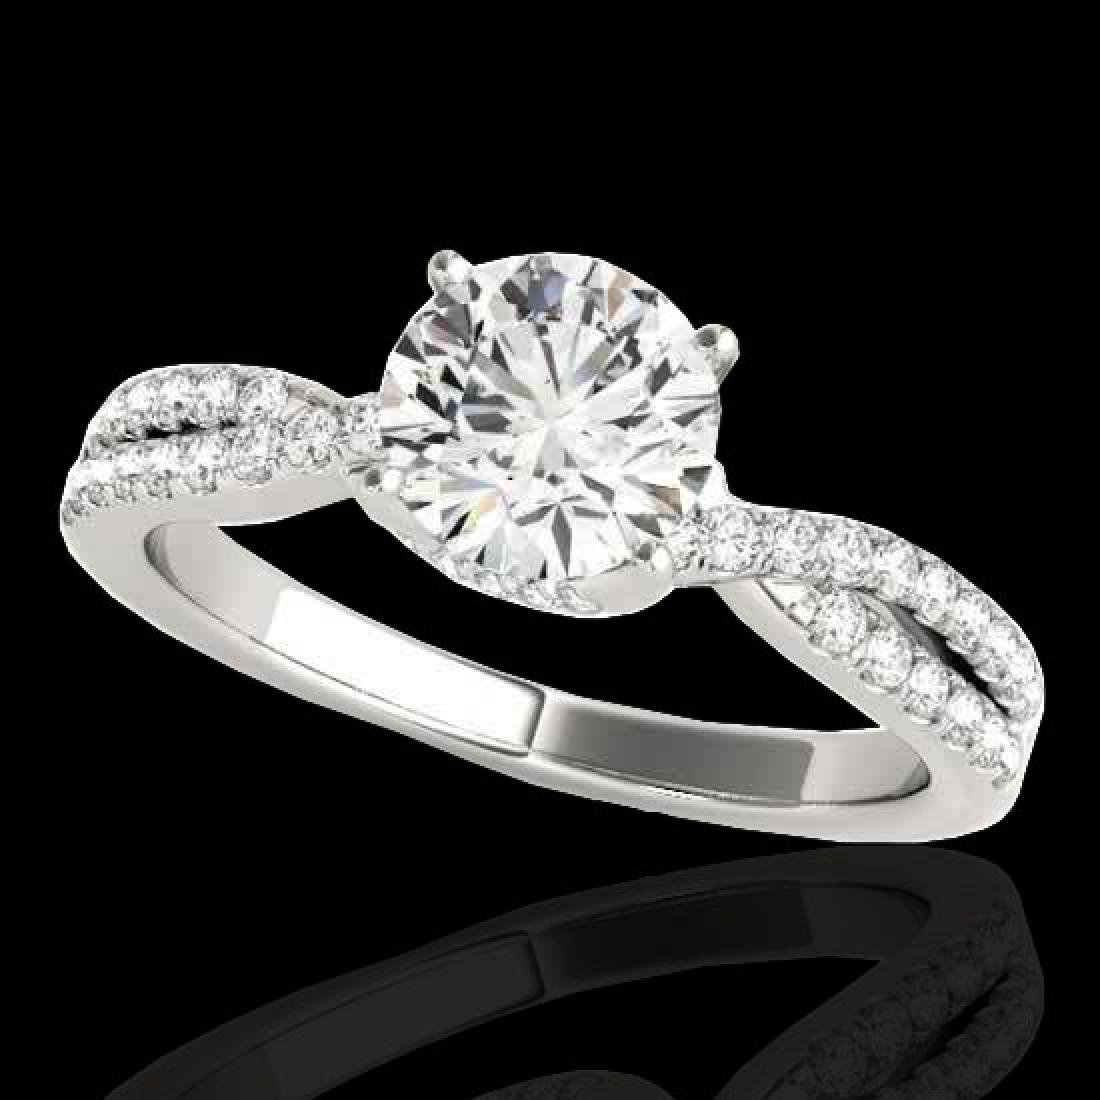 1.3 CTW H-SI/I Certified Diamond Solitaire Ring 10K